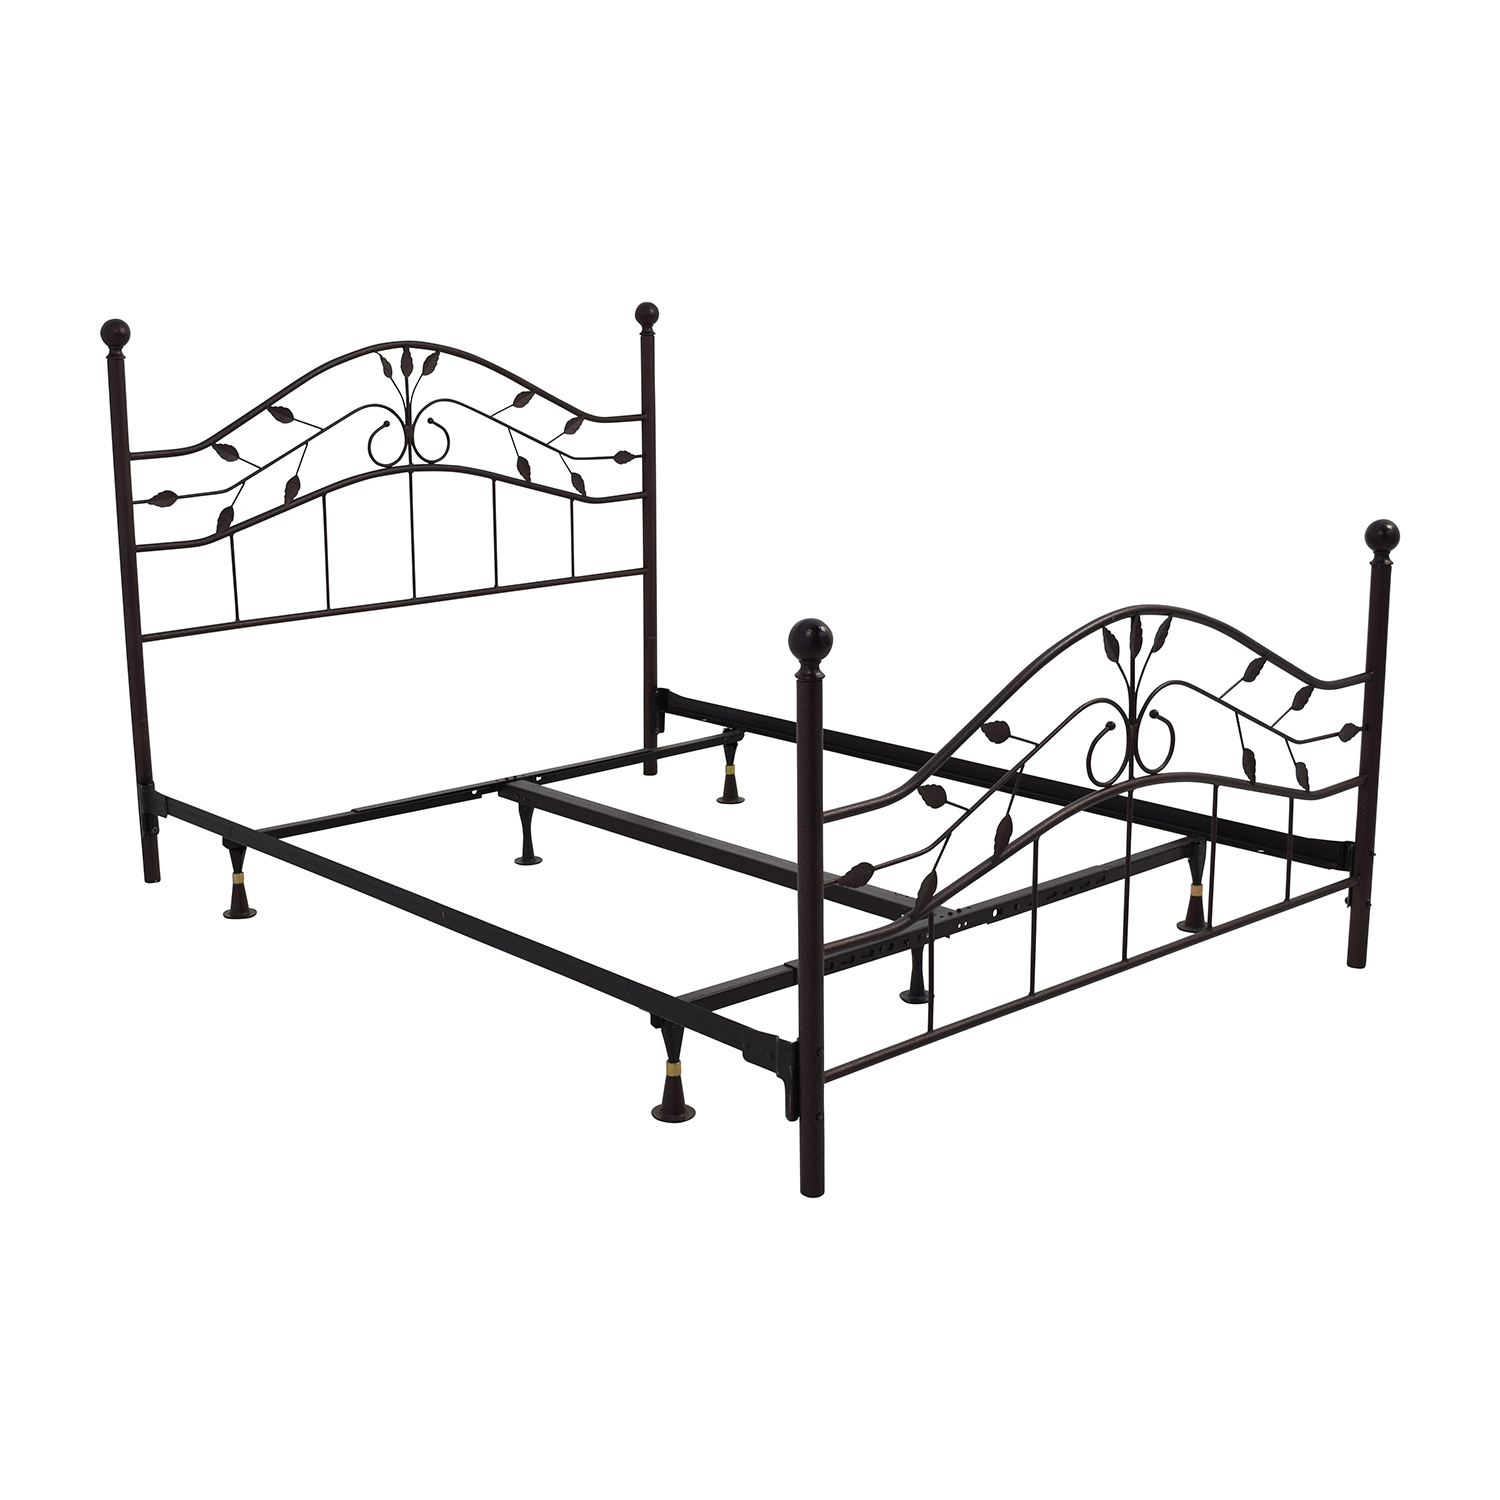 67 off metal queen size leaf design bed frame beds for Queen size bed frame